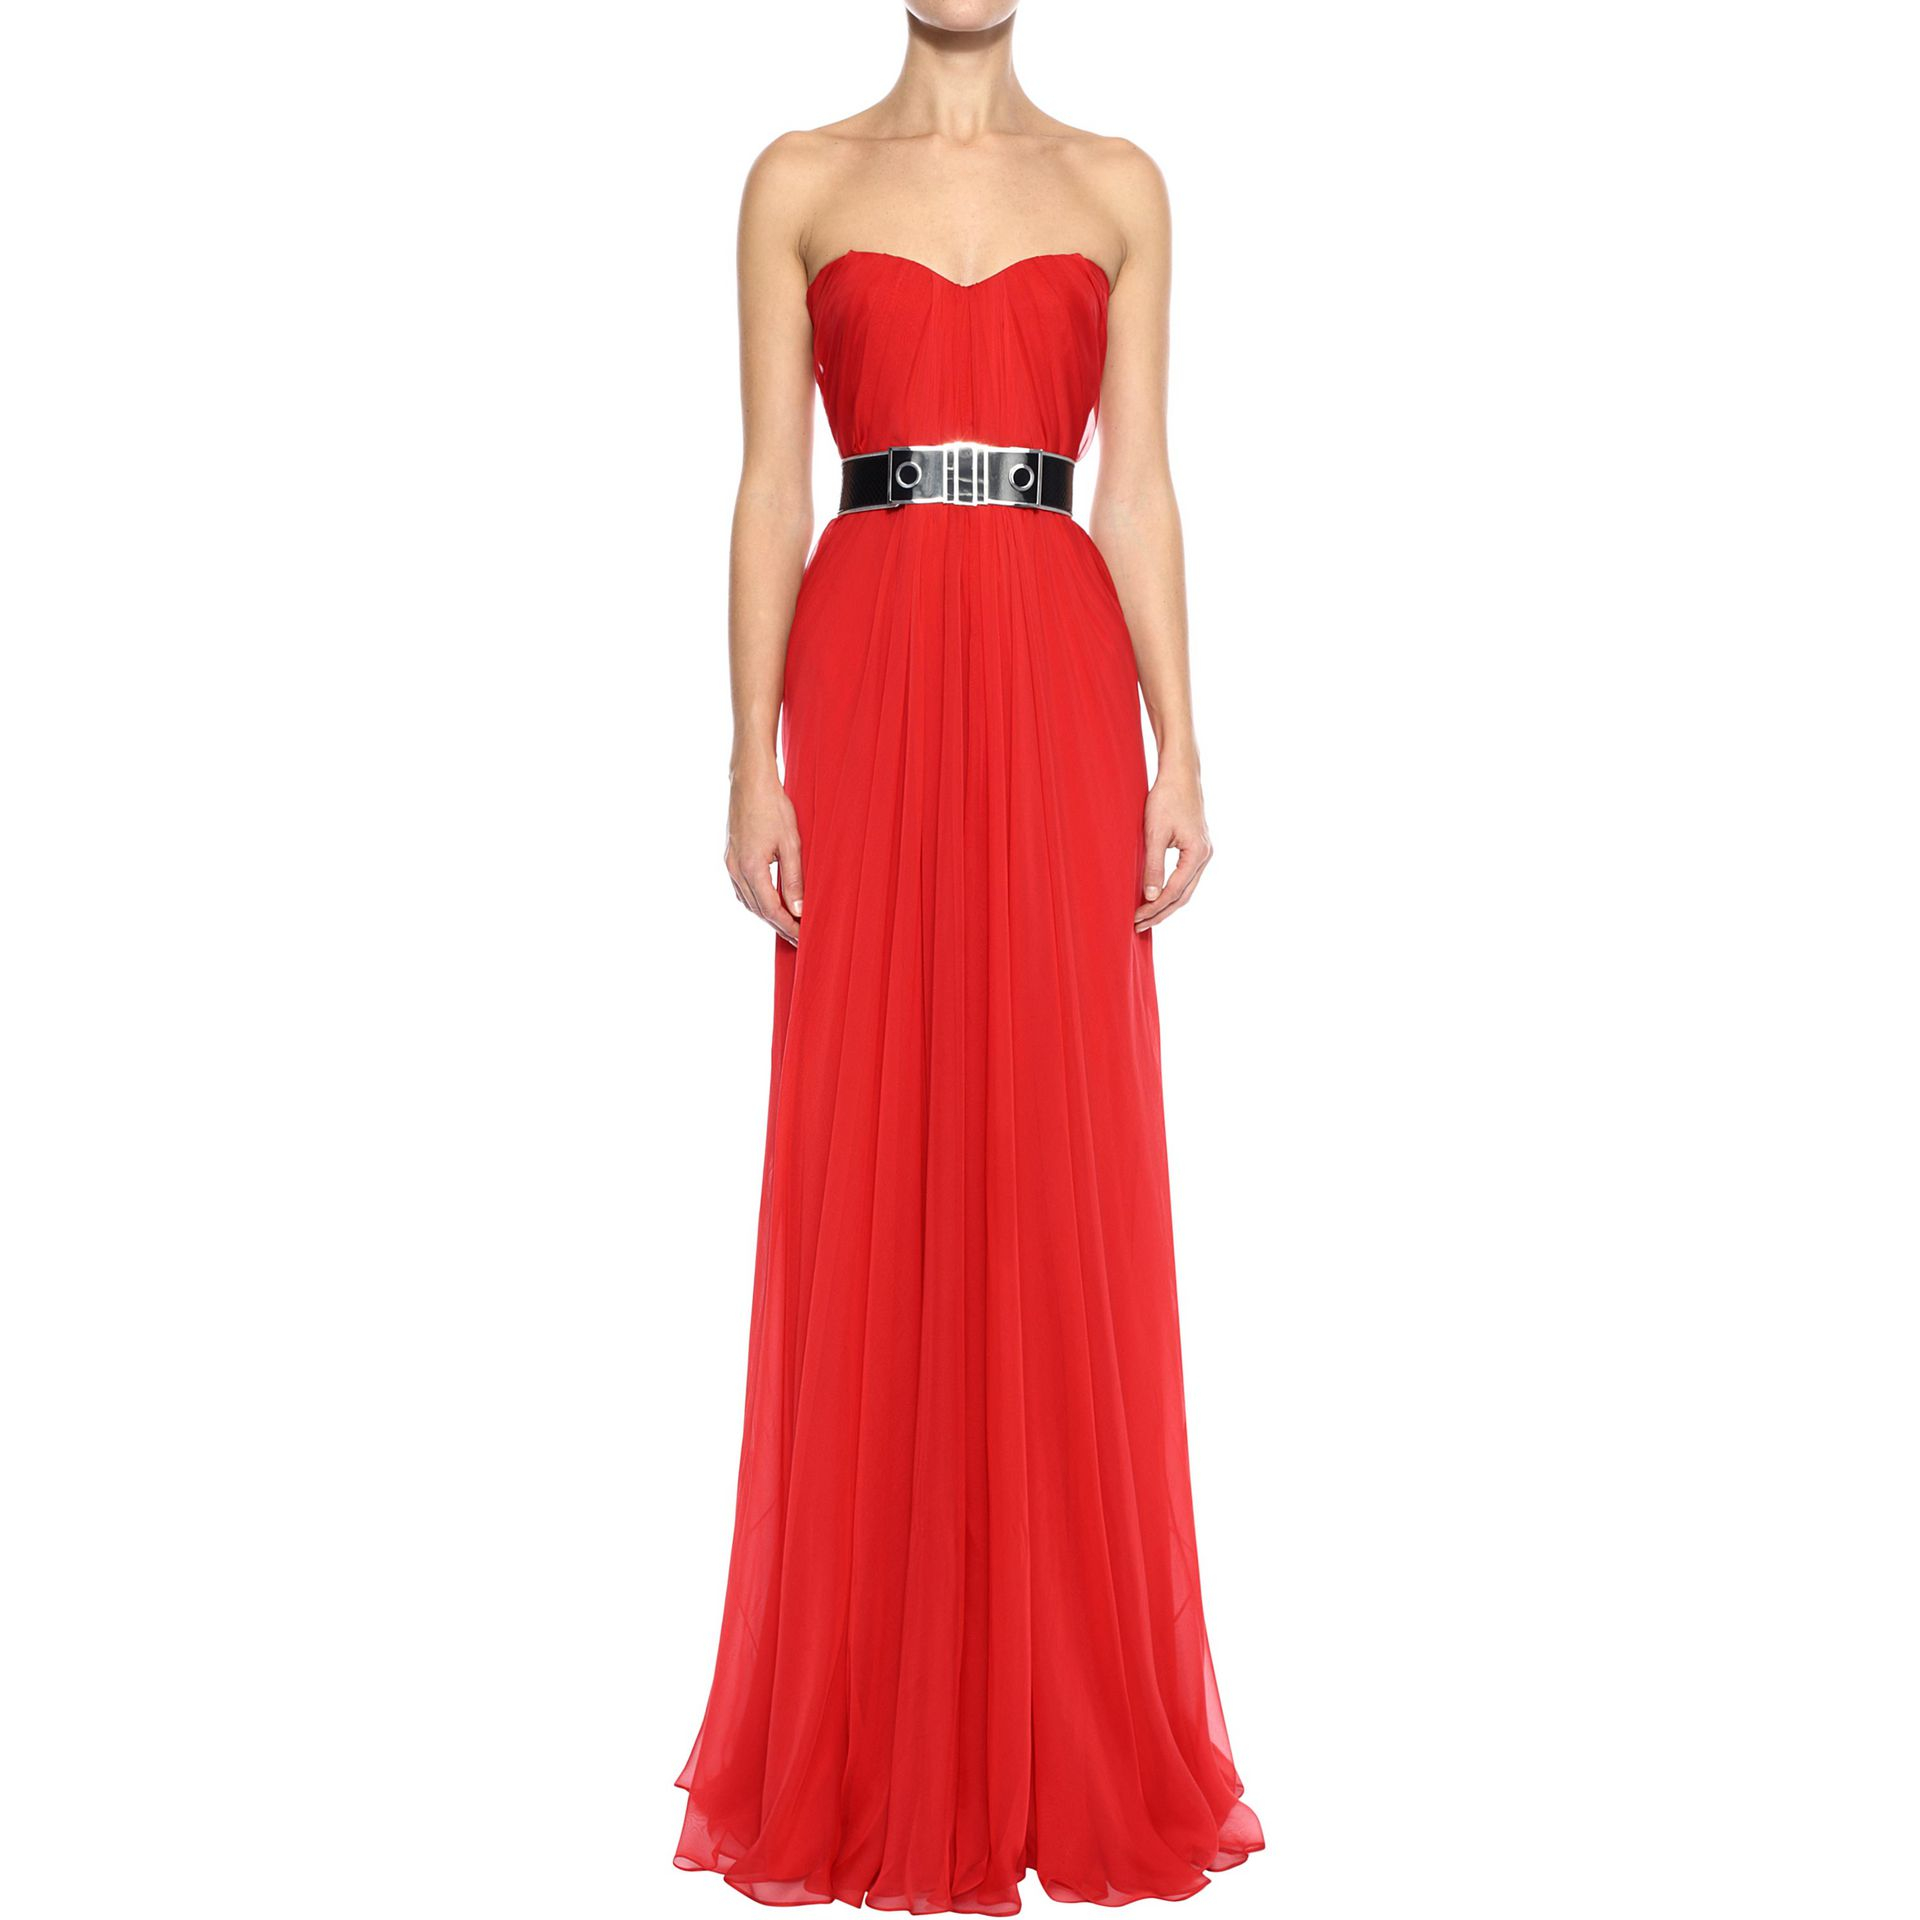 Alexander mcqueen Draped Bustier Gown in Red | Lyst